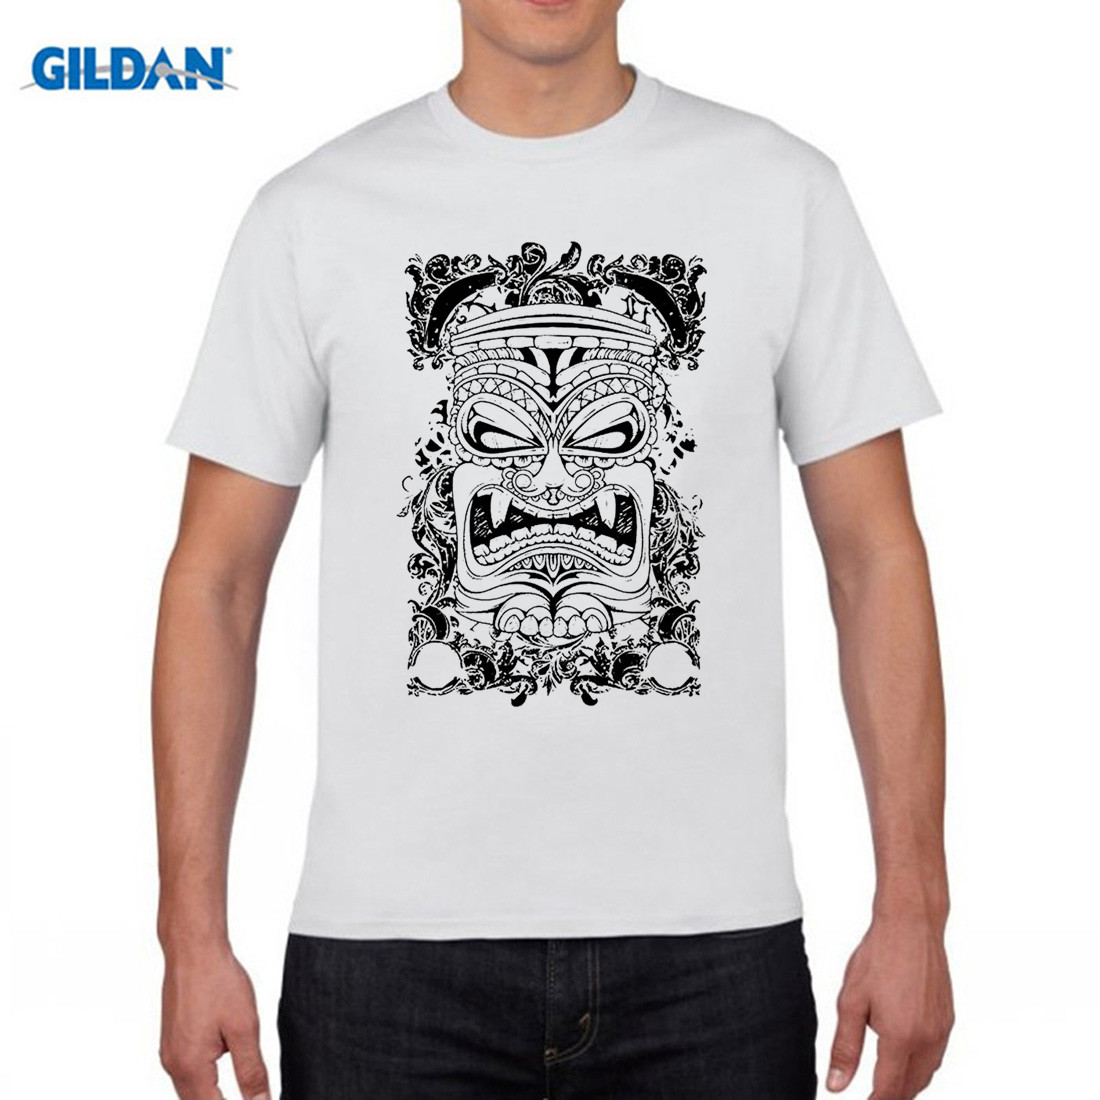 GILDAN designer TIKI FACE - island tropical paradise - Mens Cotton T-Shirt Apparel birthday t shirts